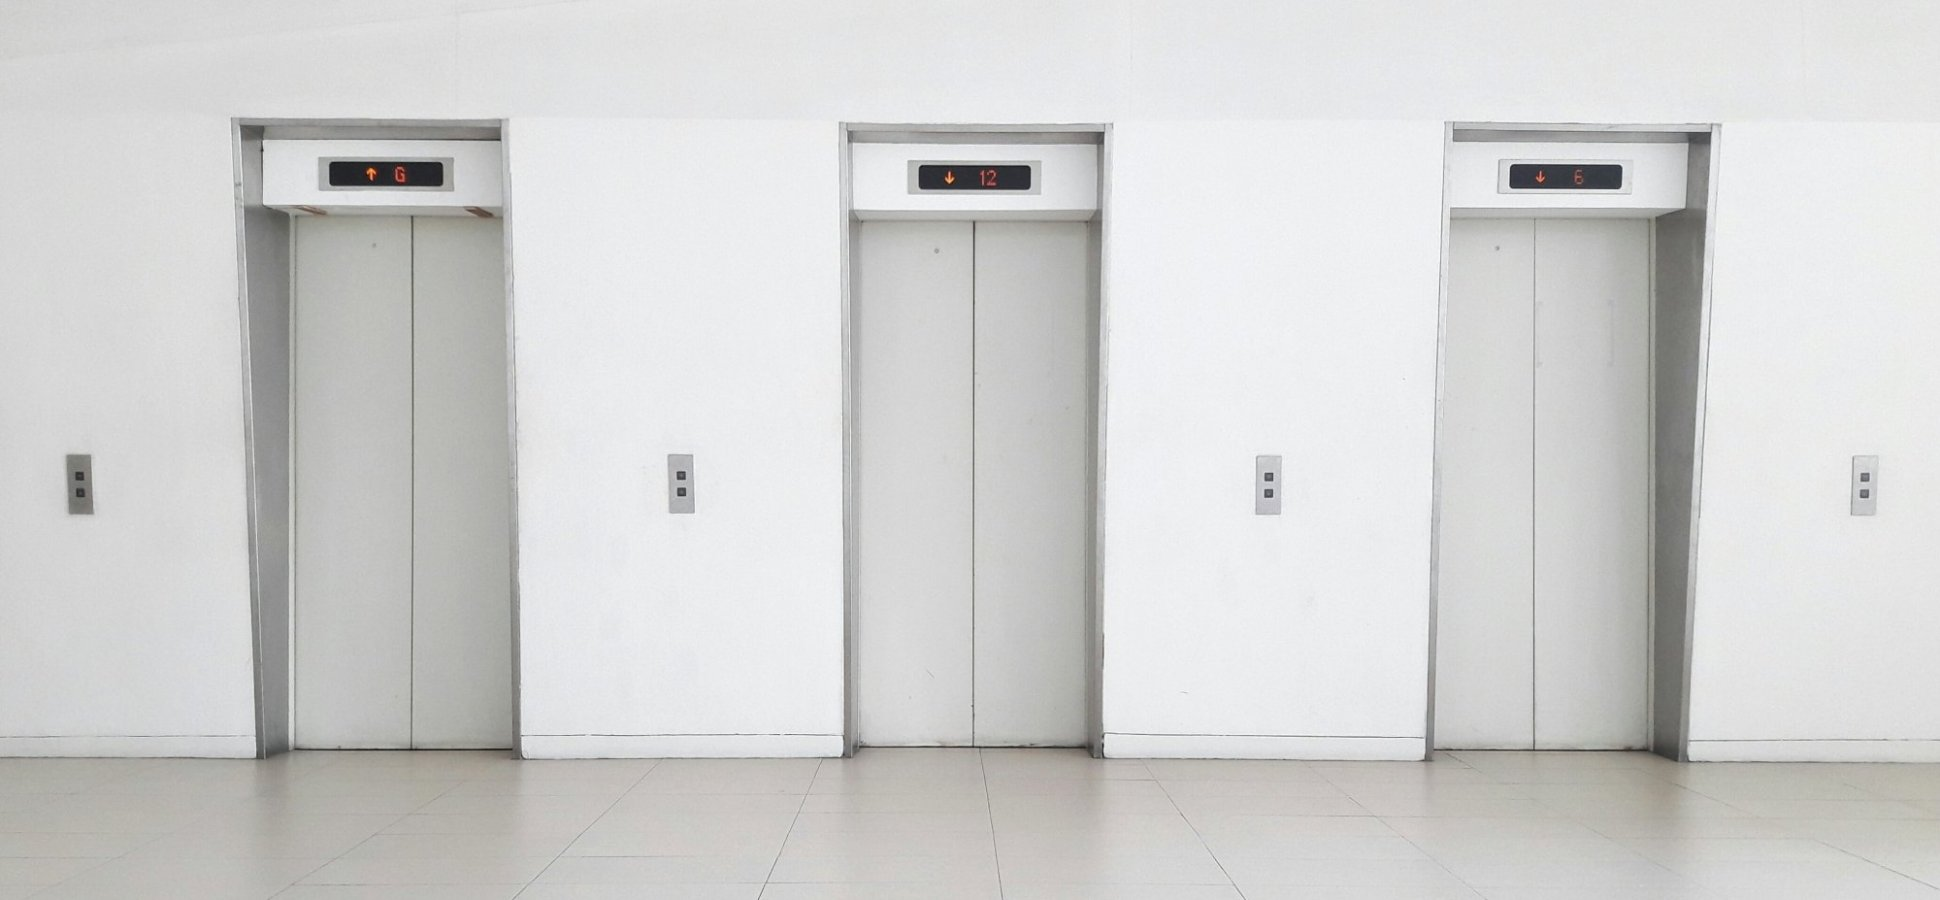 The Best Elevator Pitch: 17 Ways to Persuasively Tell Your Story